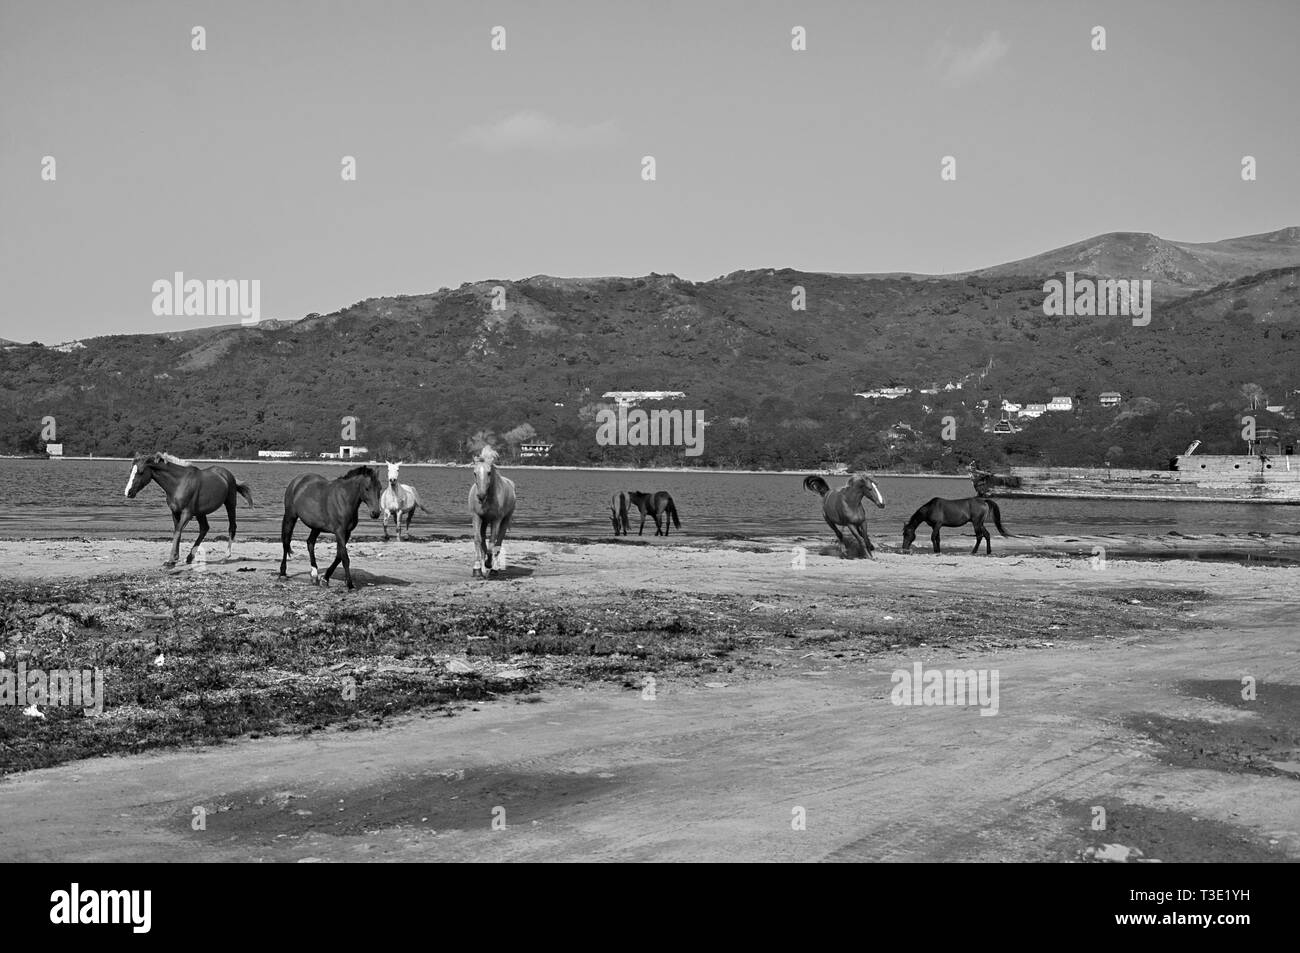 black and white artistic photo of horses on the shore of the Japanese Sea - Stock Image